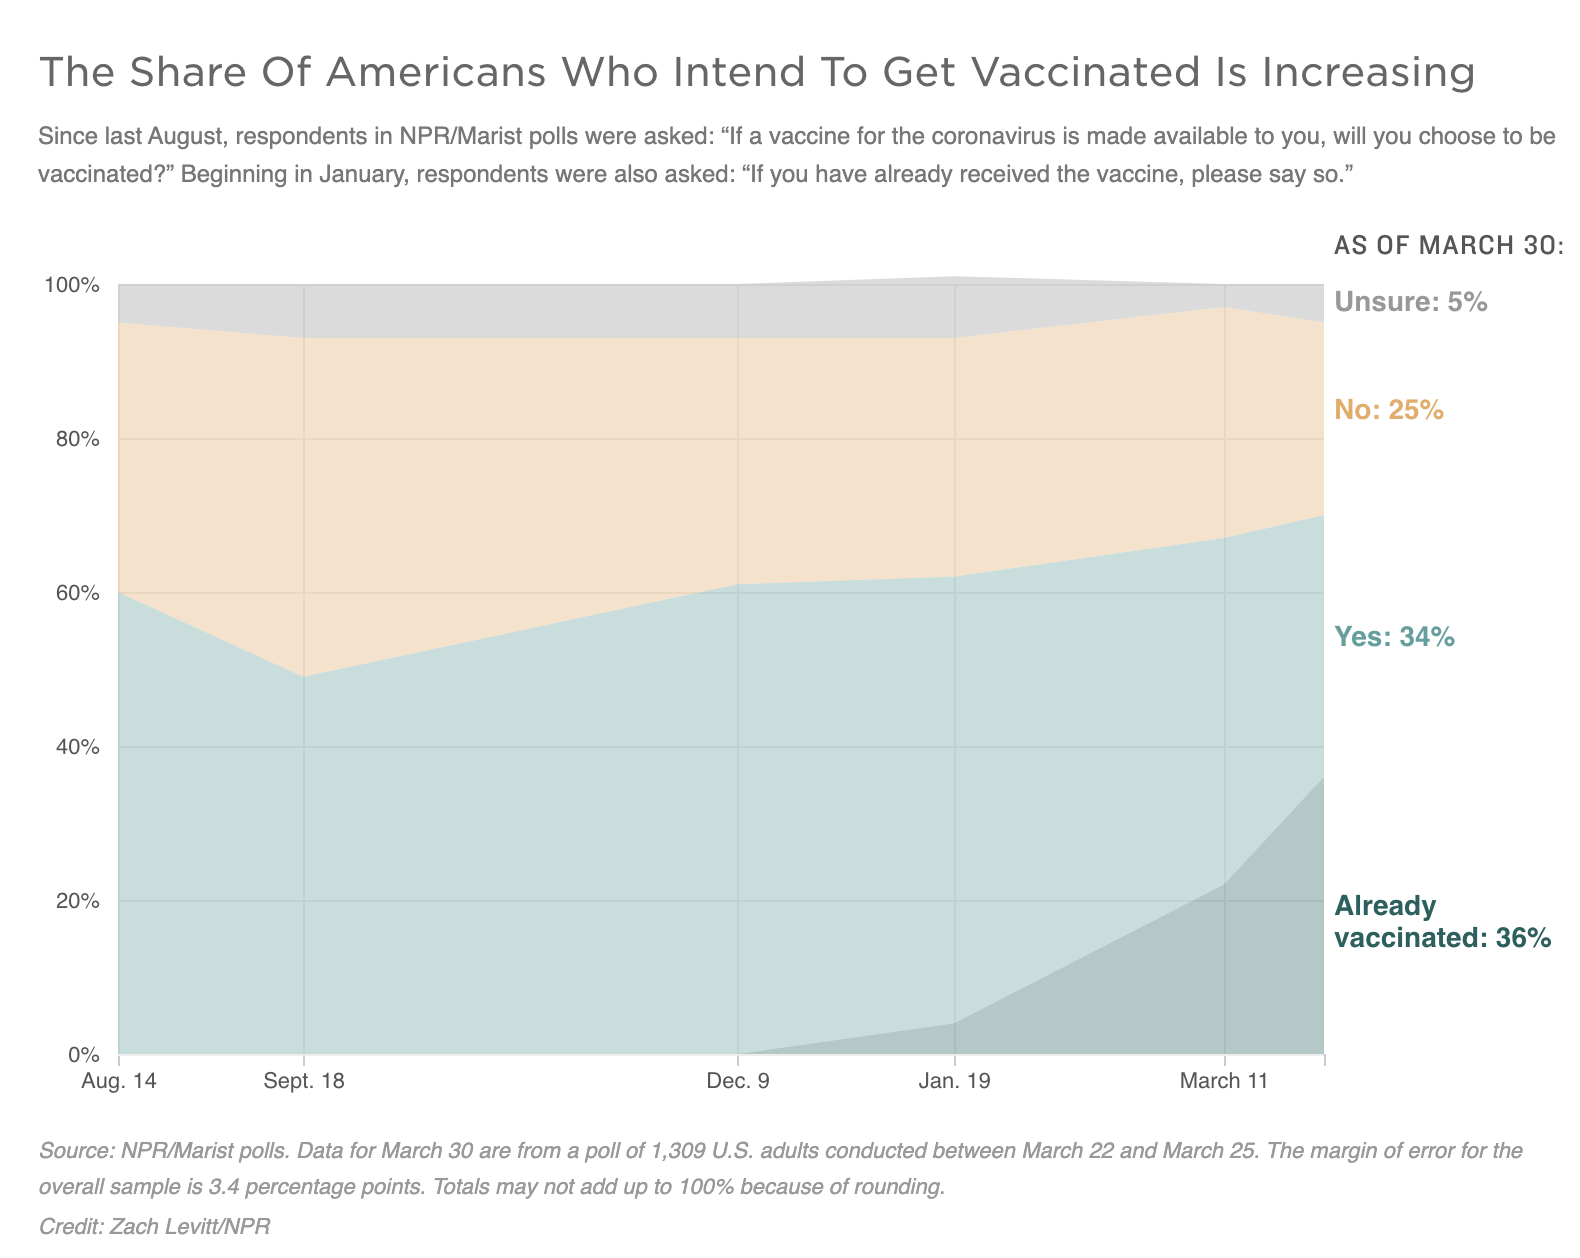 Graph: The Share Of Americans Who Intend To Get Vaccinated Is Increasing